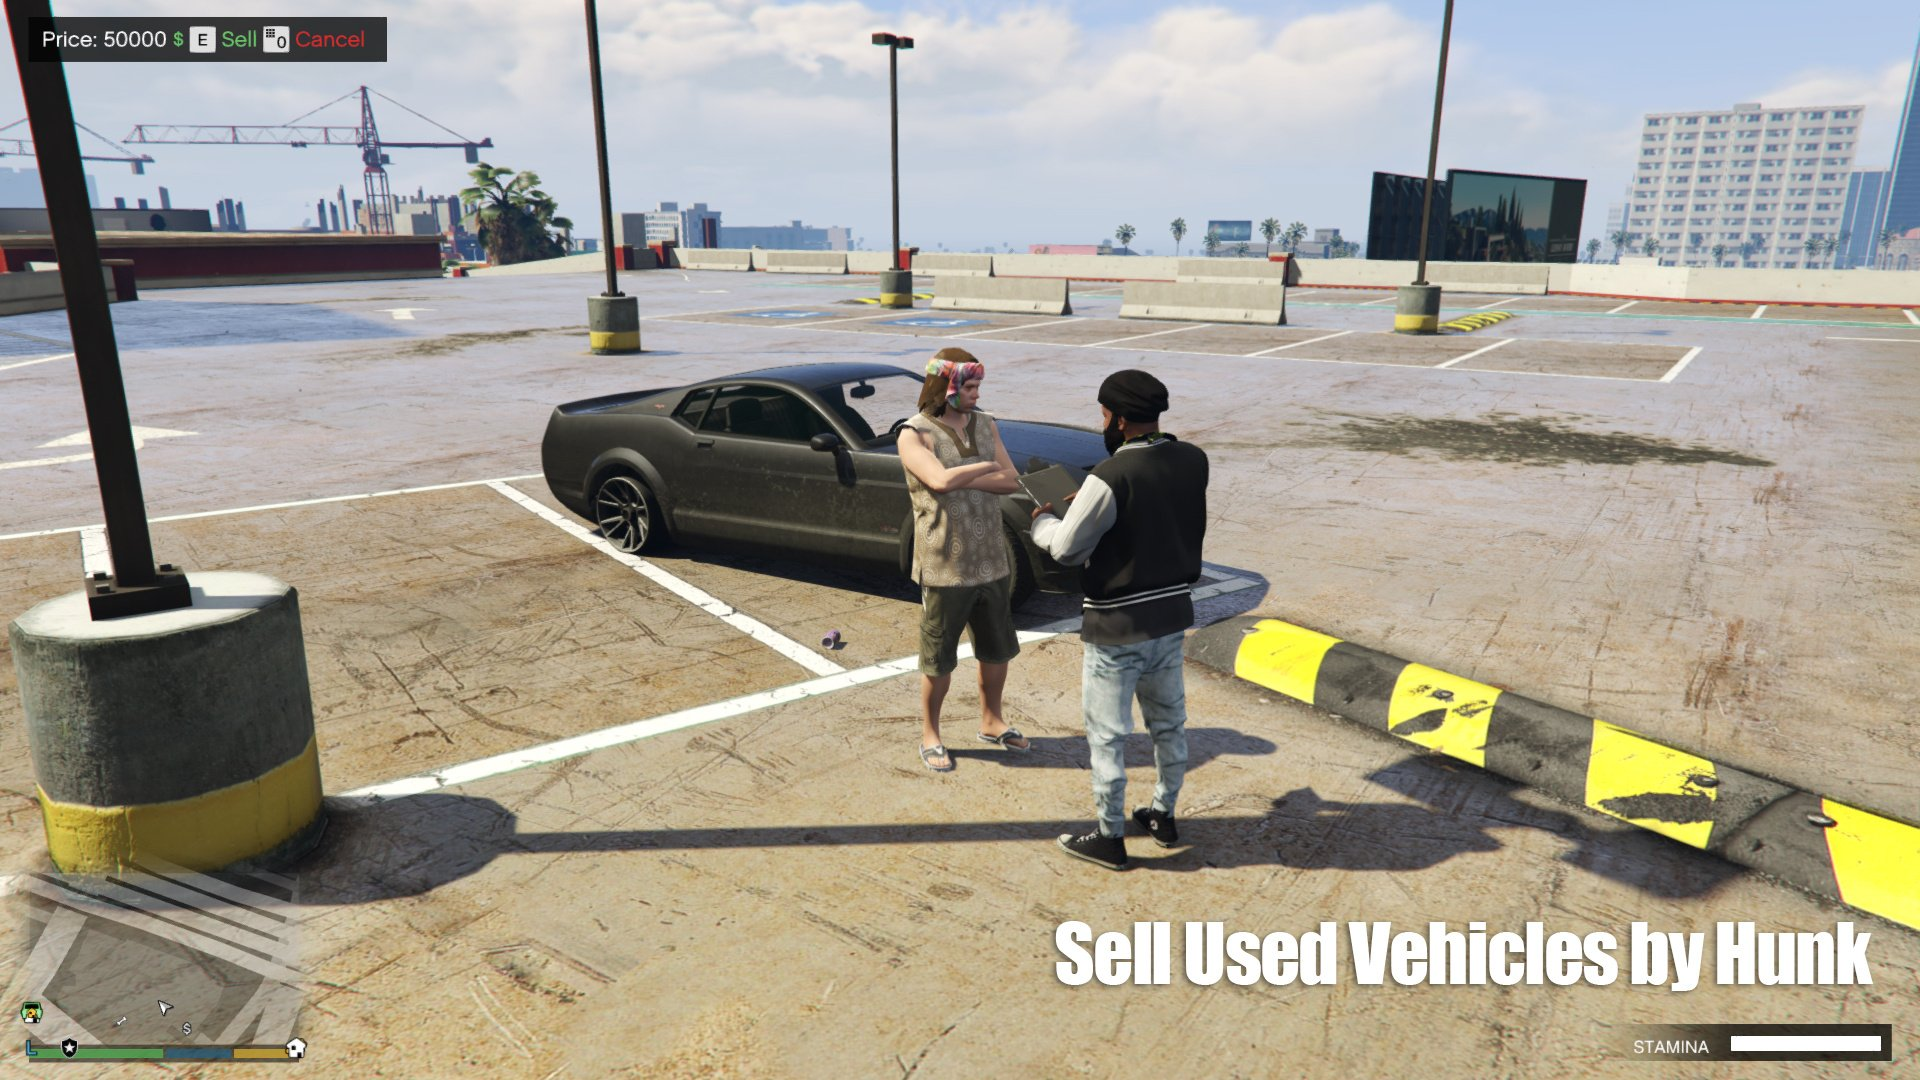 gta v online vehicle sell prices